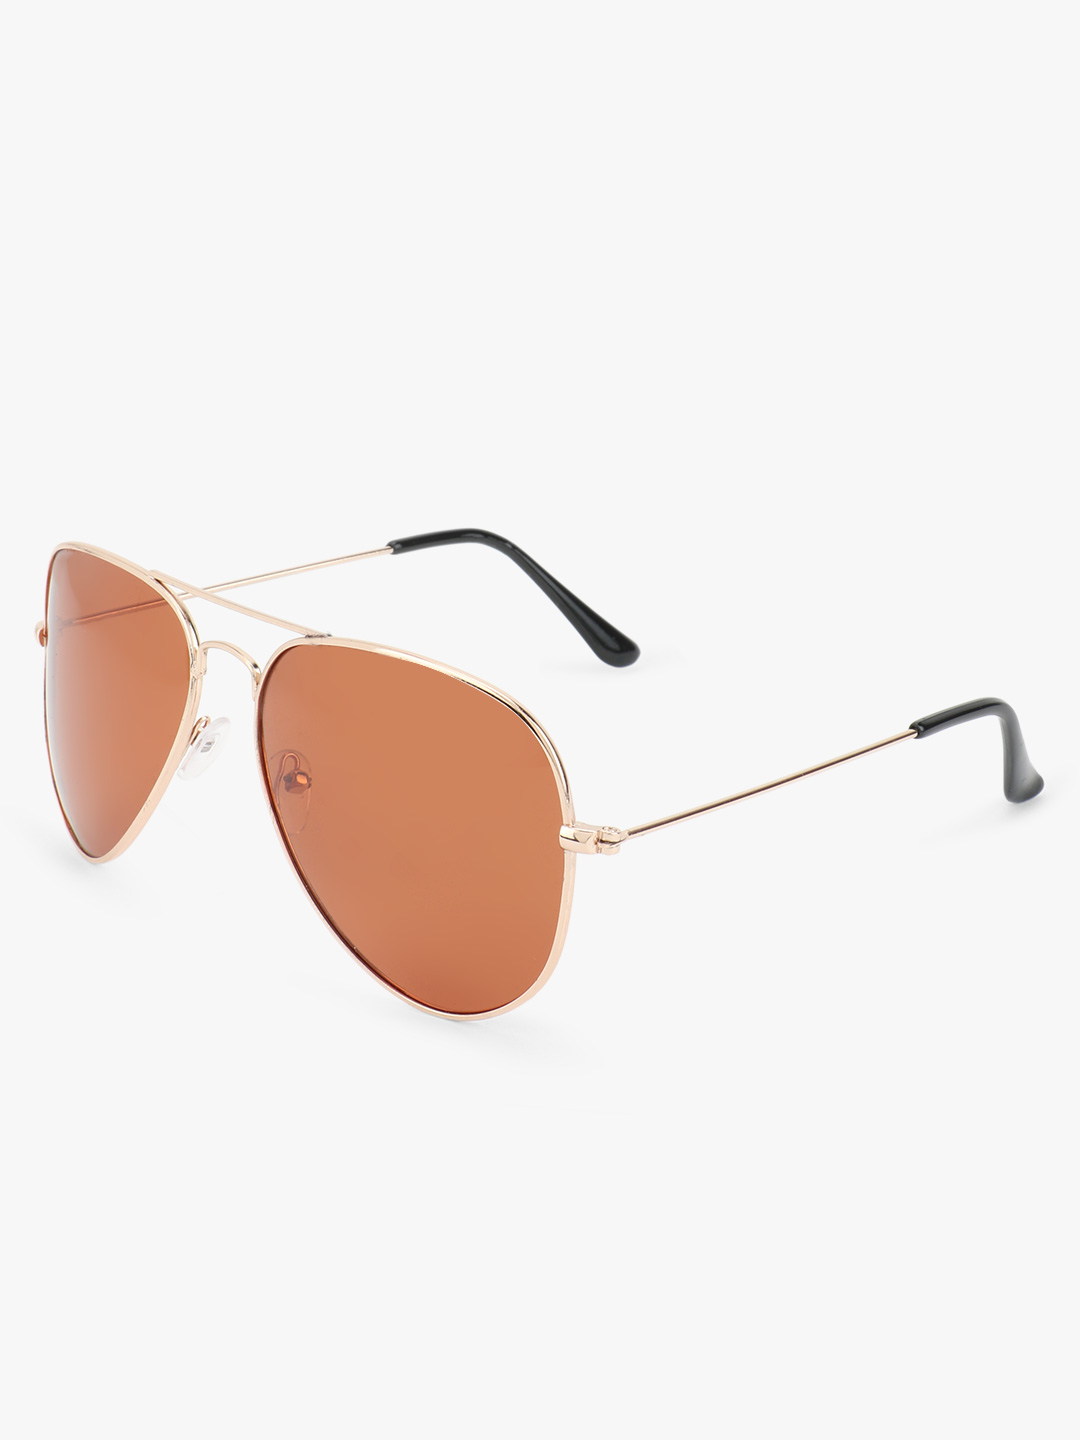 Kindred Brown Polorized Pilot Sunglasses 1